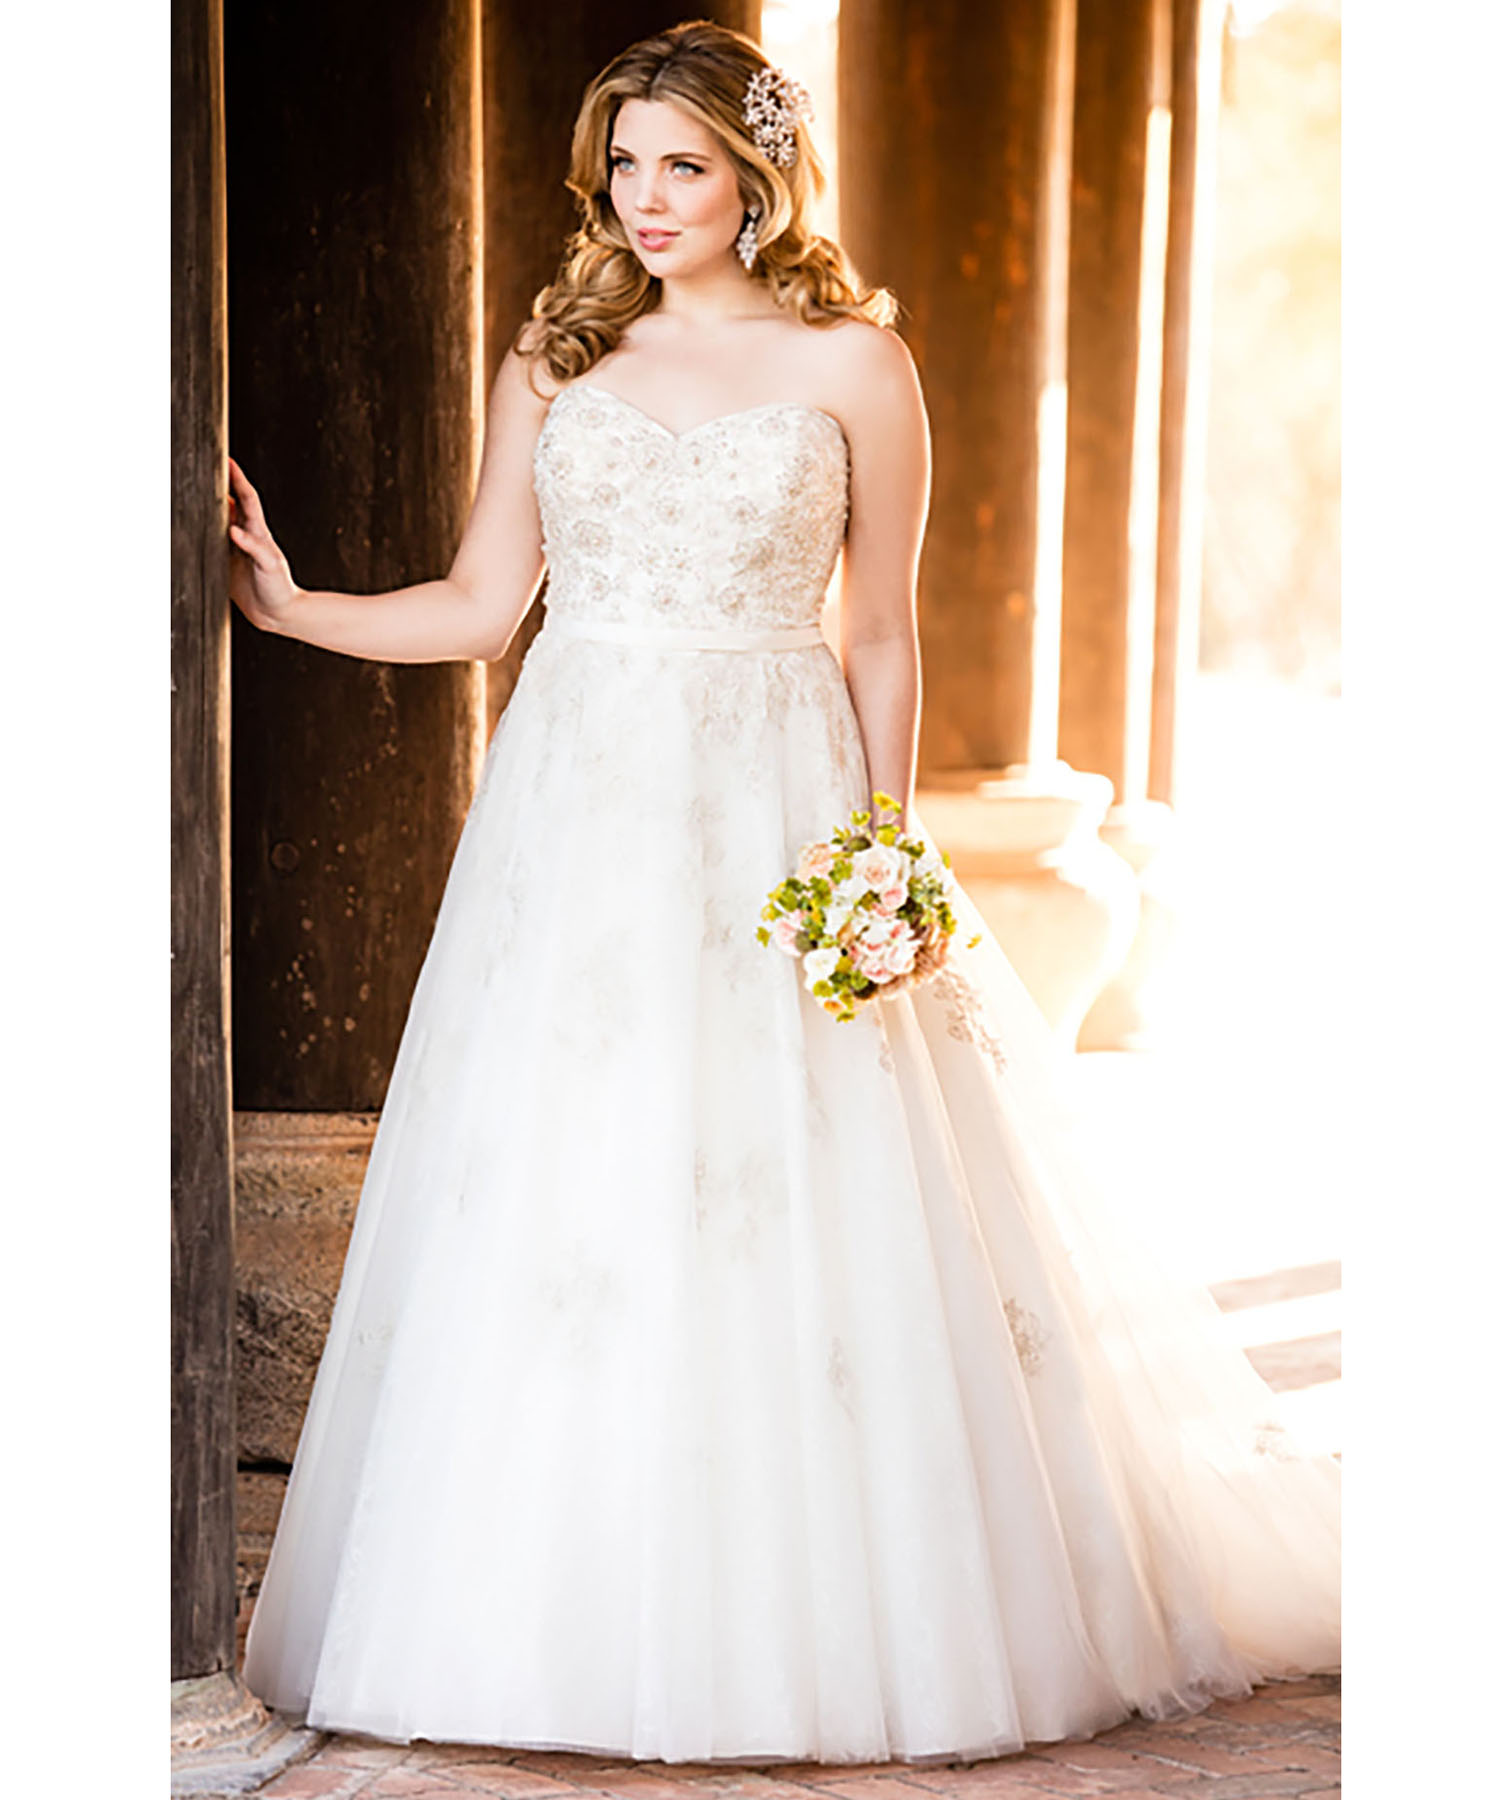 265dd726de1 Stella York Silver Plus Size Wedding Dress